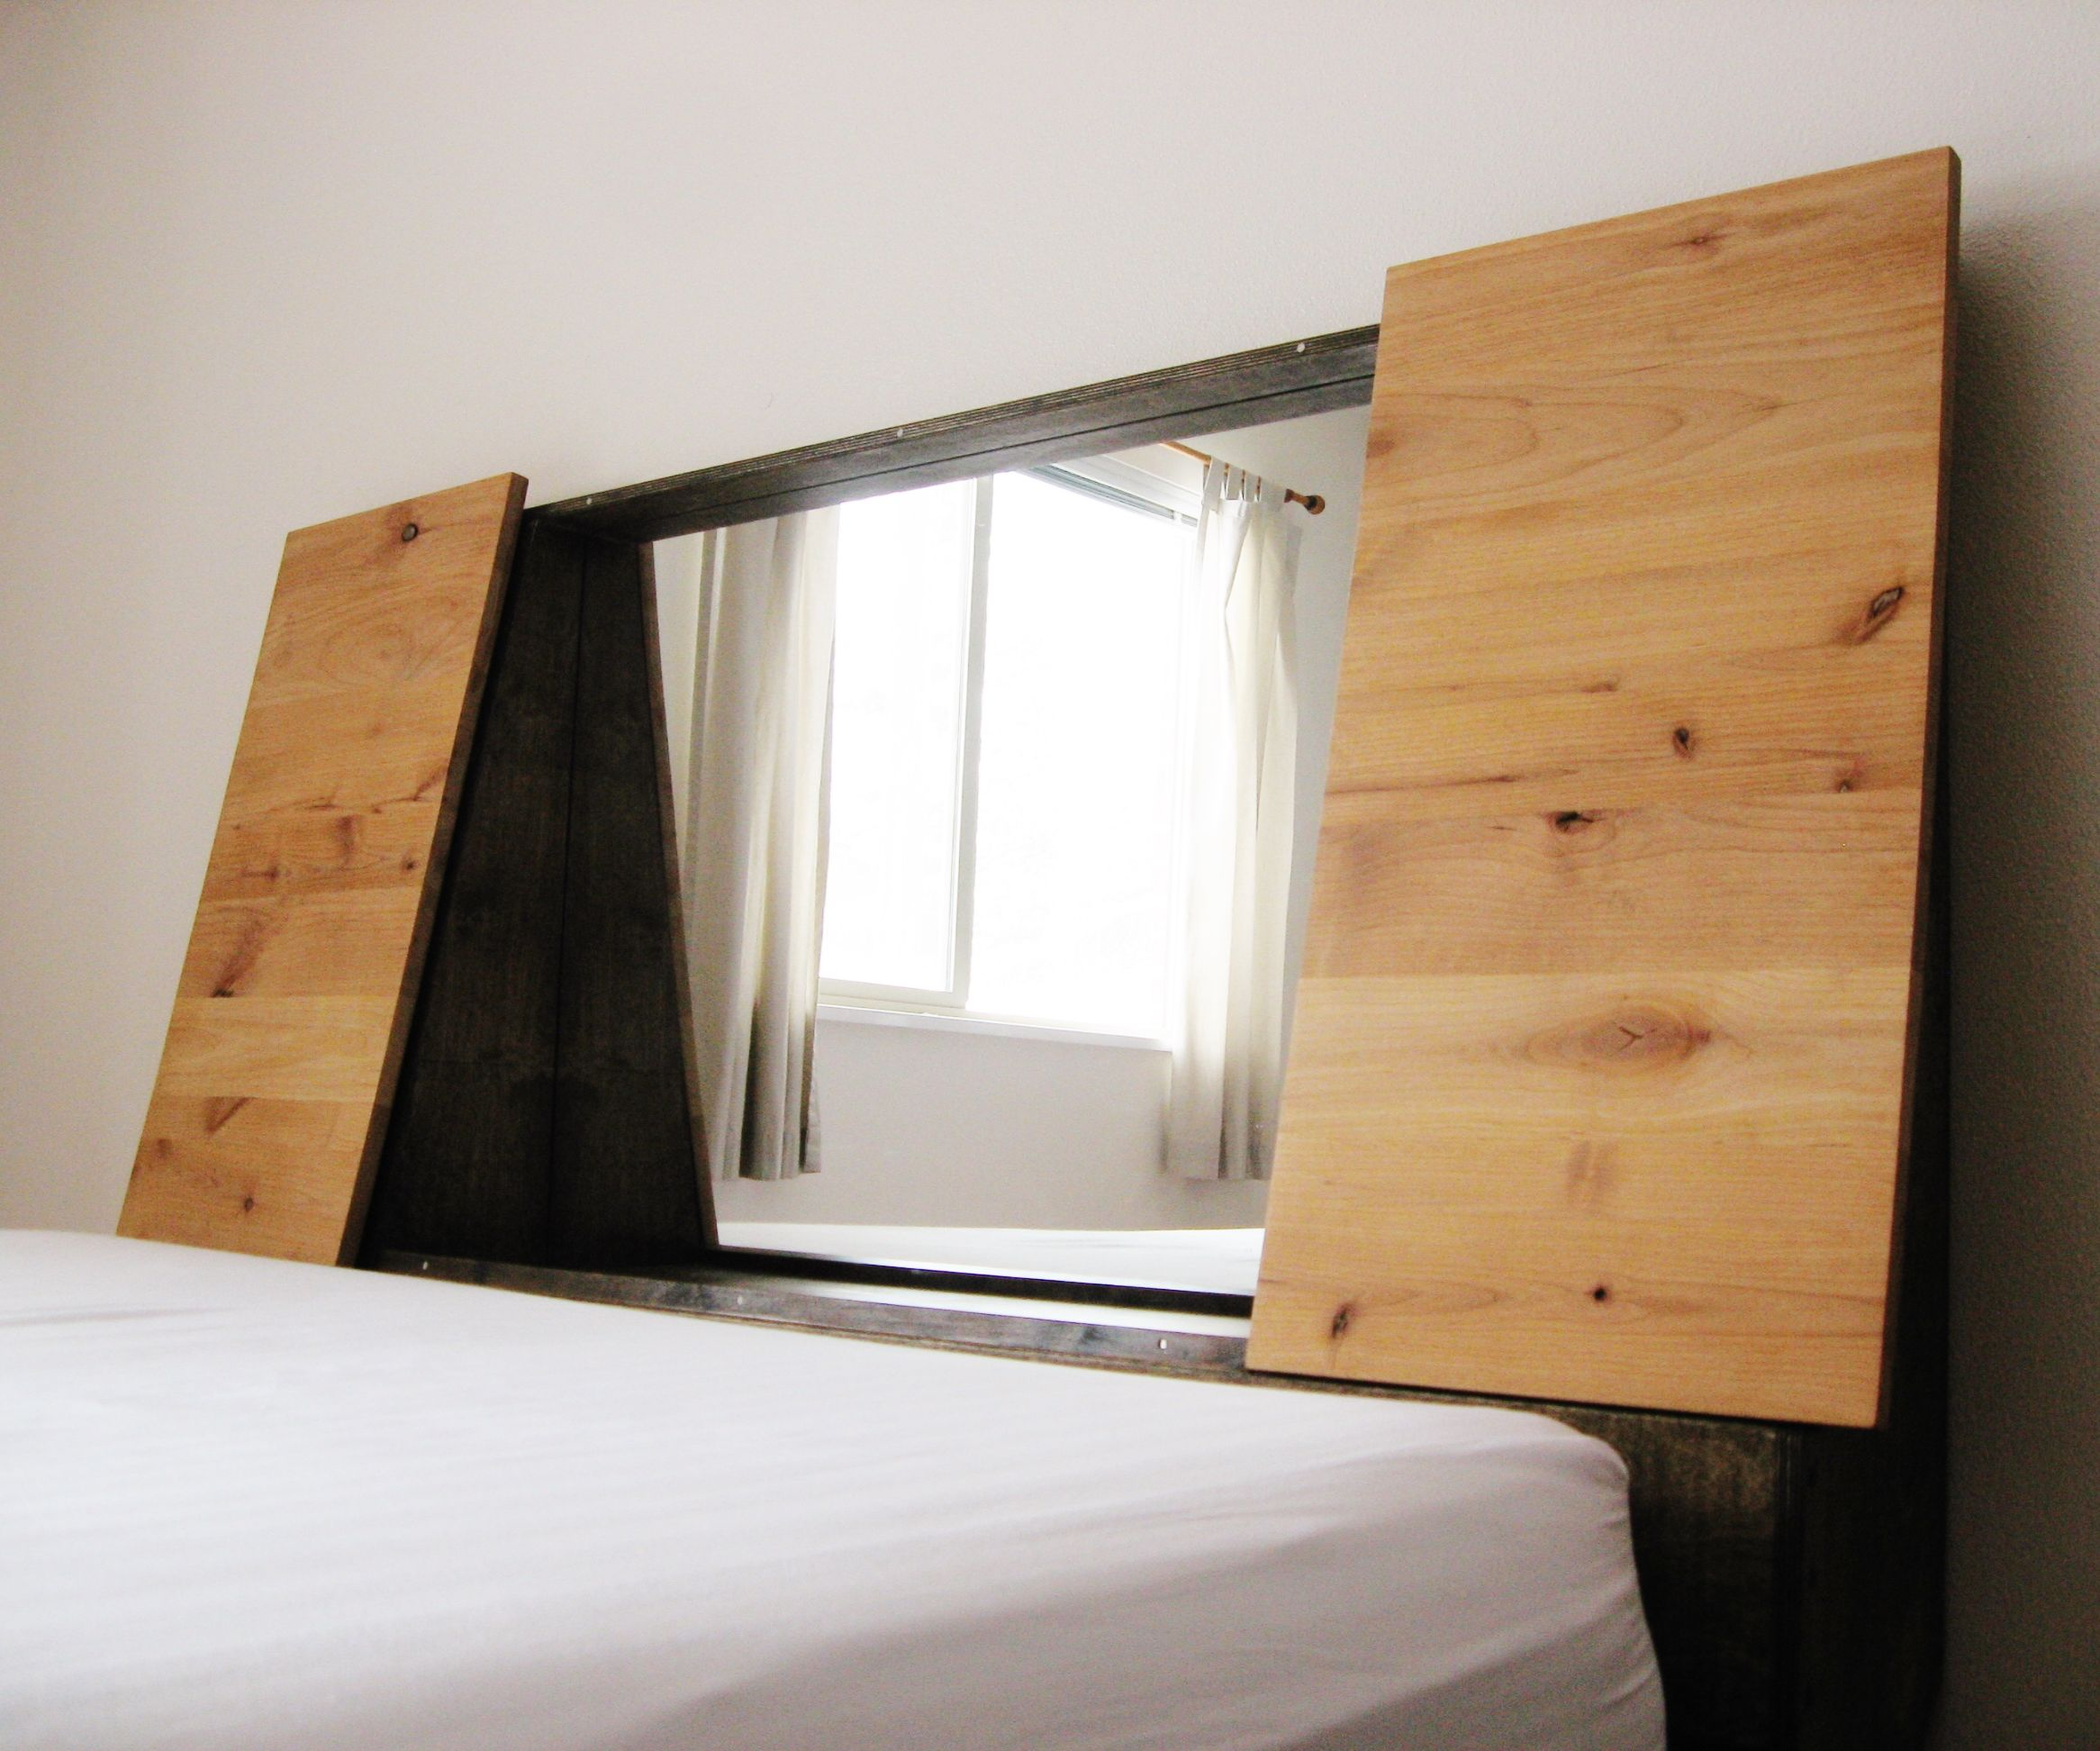 The Ultimate Headboard (secret compartments & more!)